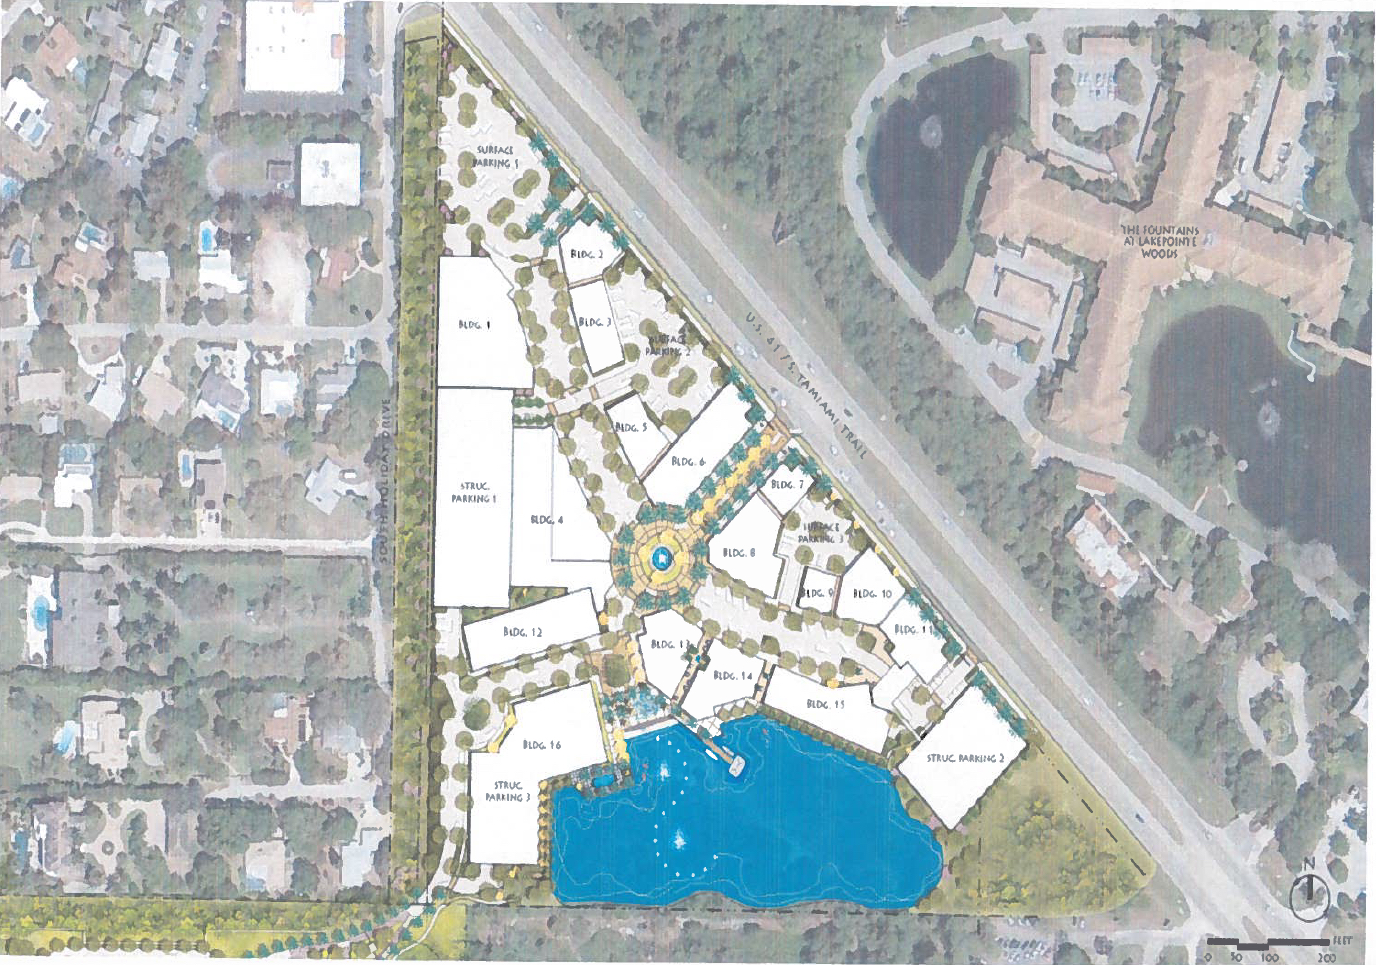 Neighbors of proposed Cassia Cay development awaiting Planning Commission hearing on the project